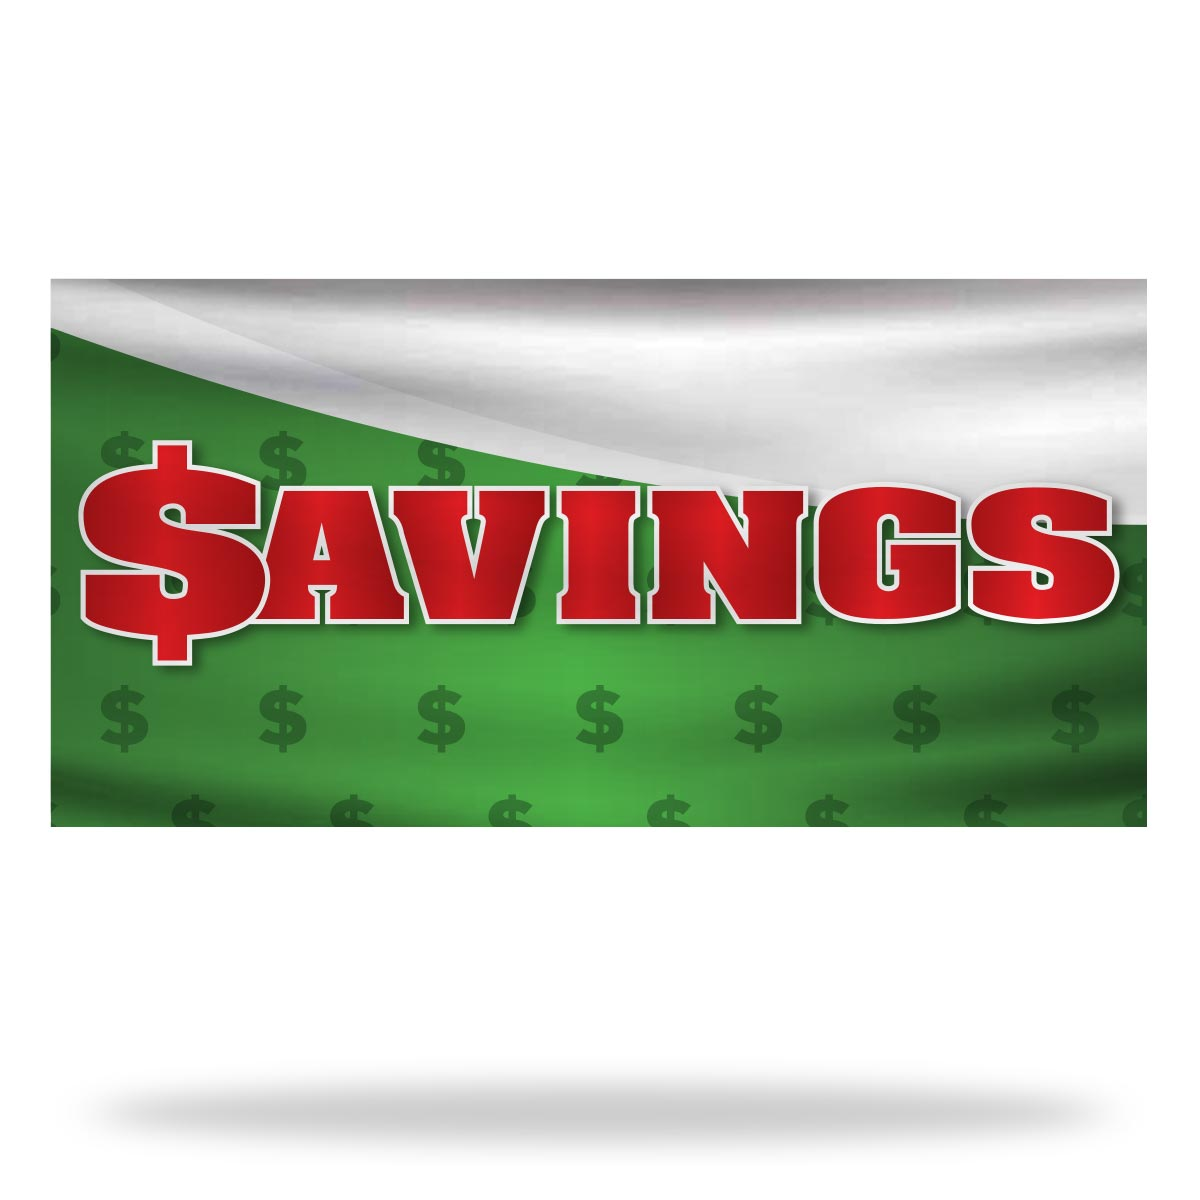 Big Savings Flags & Banners Design 01